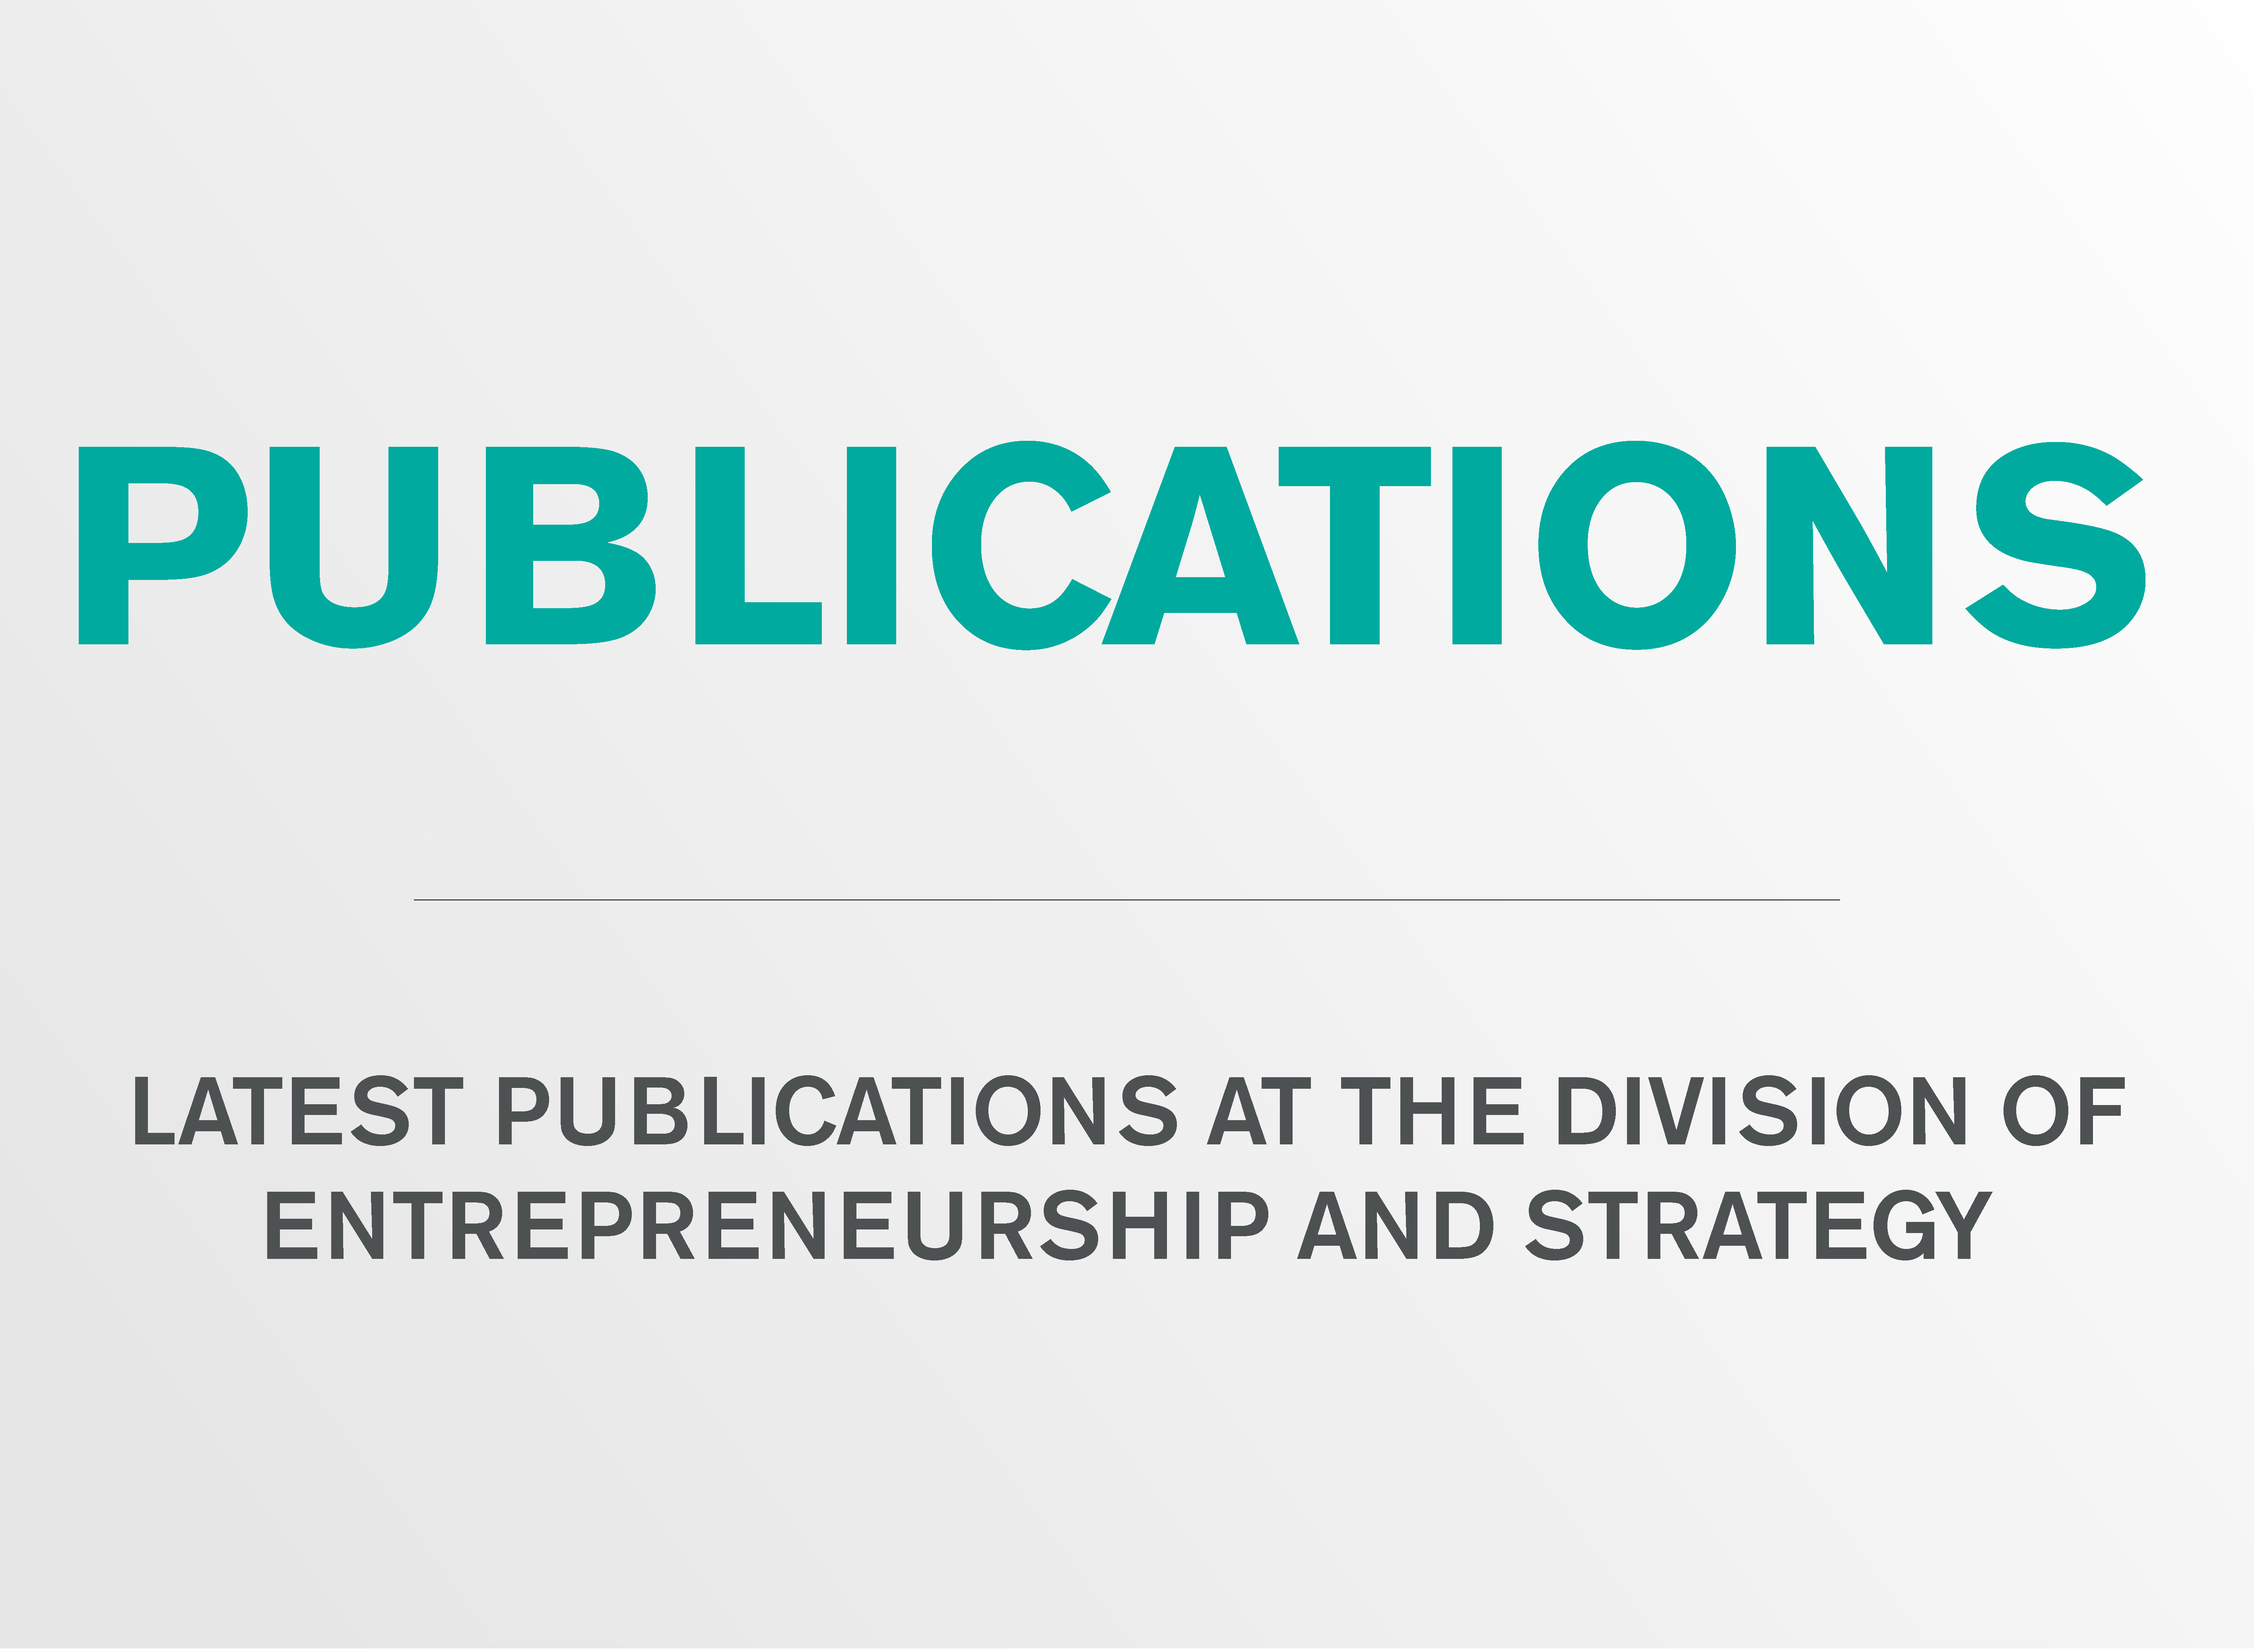 Publications at the division of Entrepreneurship and Strategy.